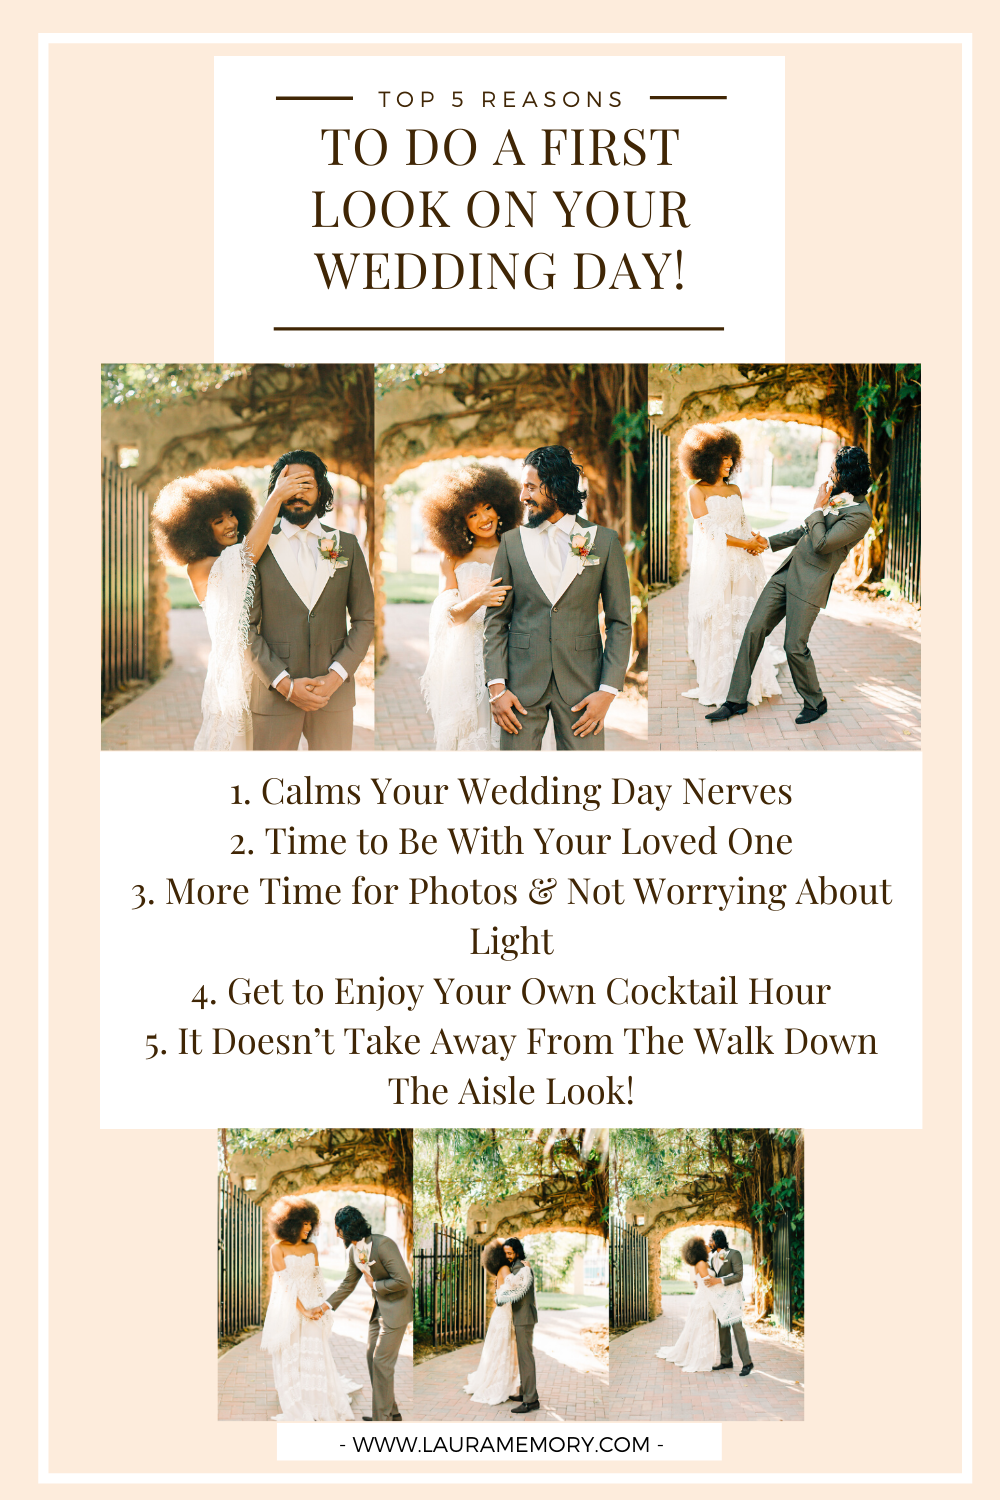 First Look on Wedding Day - Why you should do a first look on your wedding day